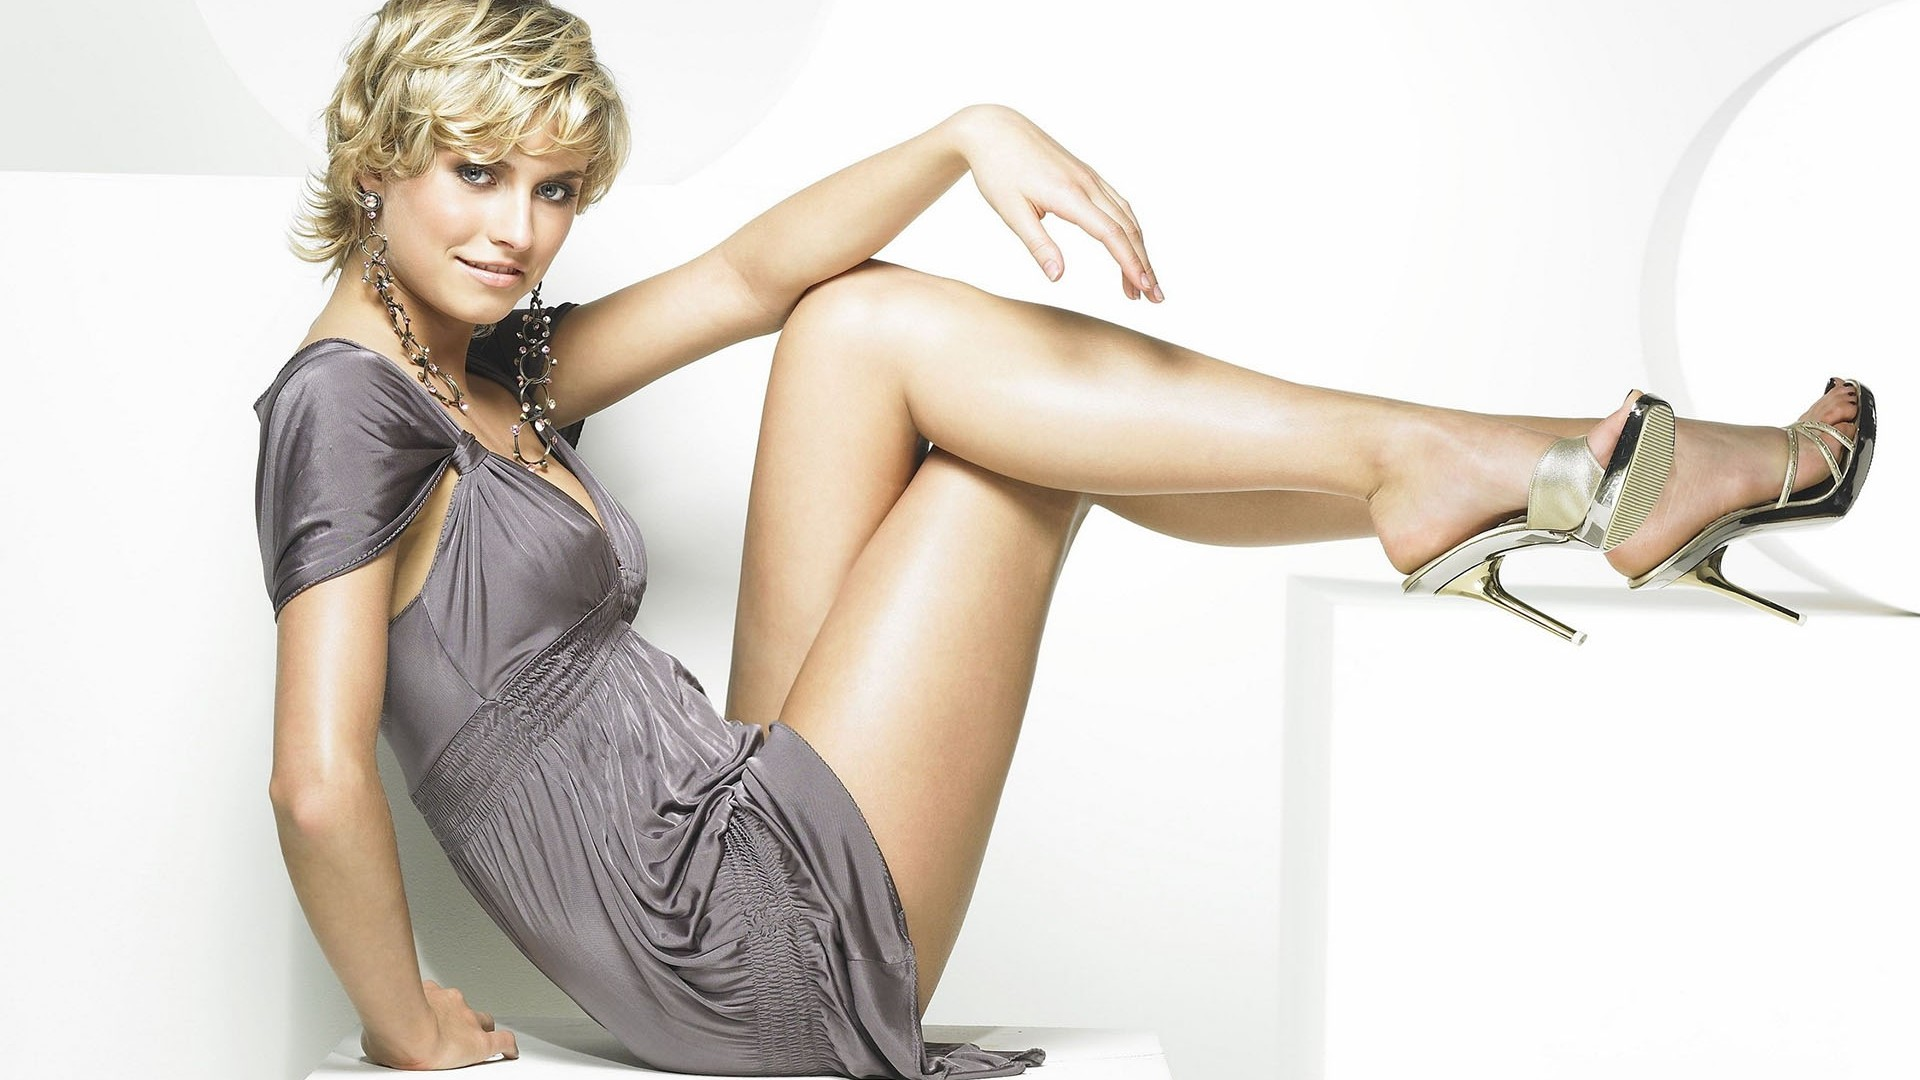 Nice Images Collection: Lena Gercke Desktop Wallpapers